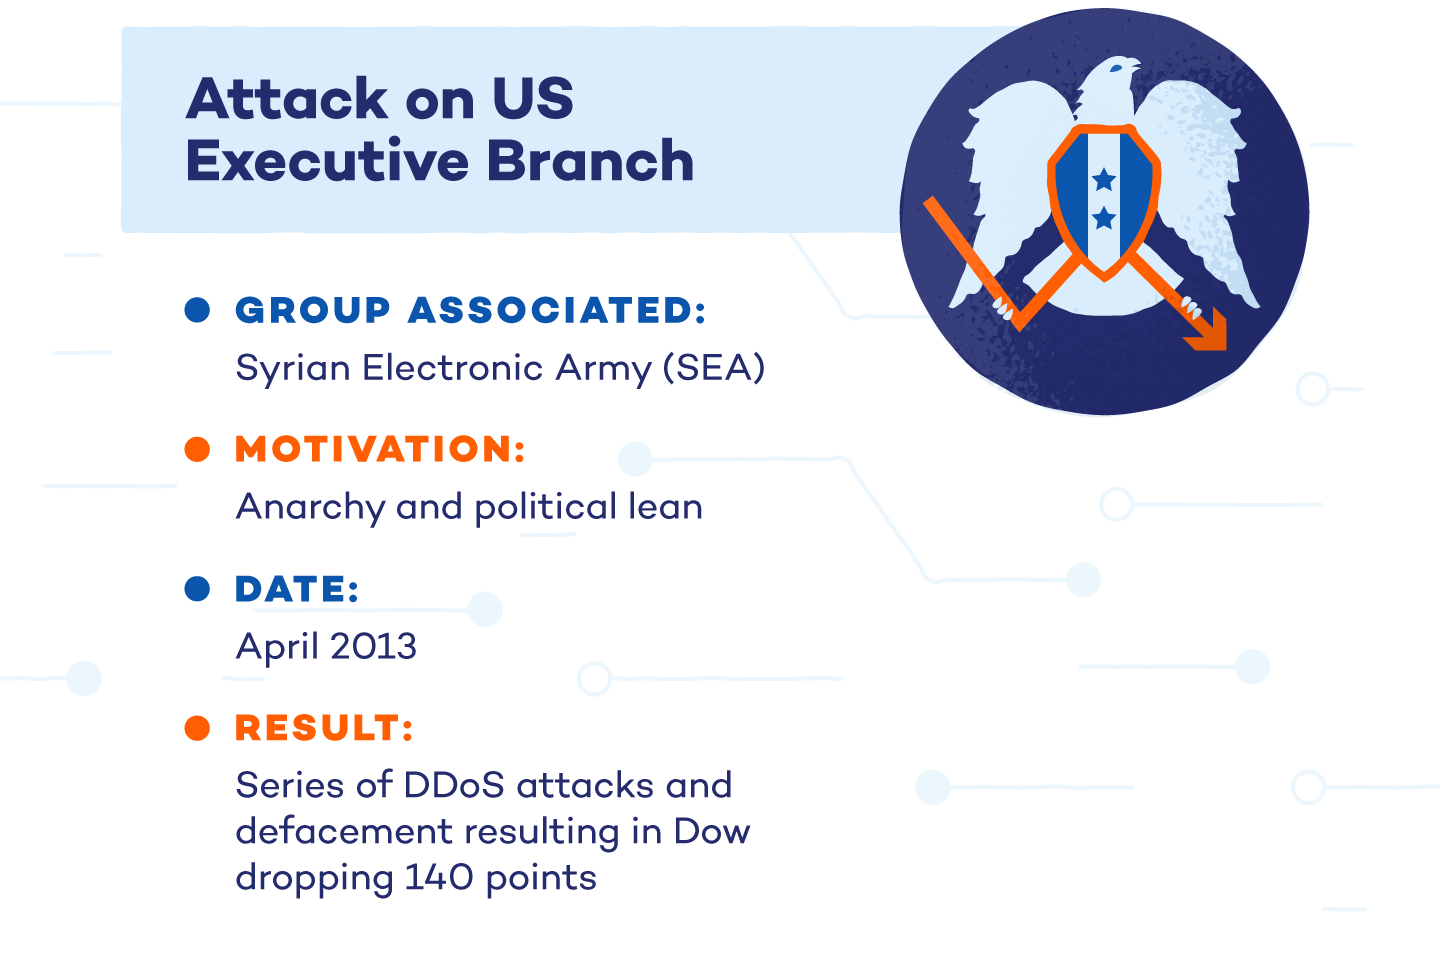 attack-on-us-executive-branch